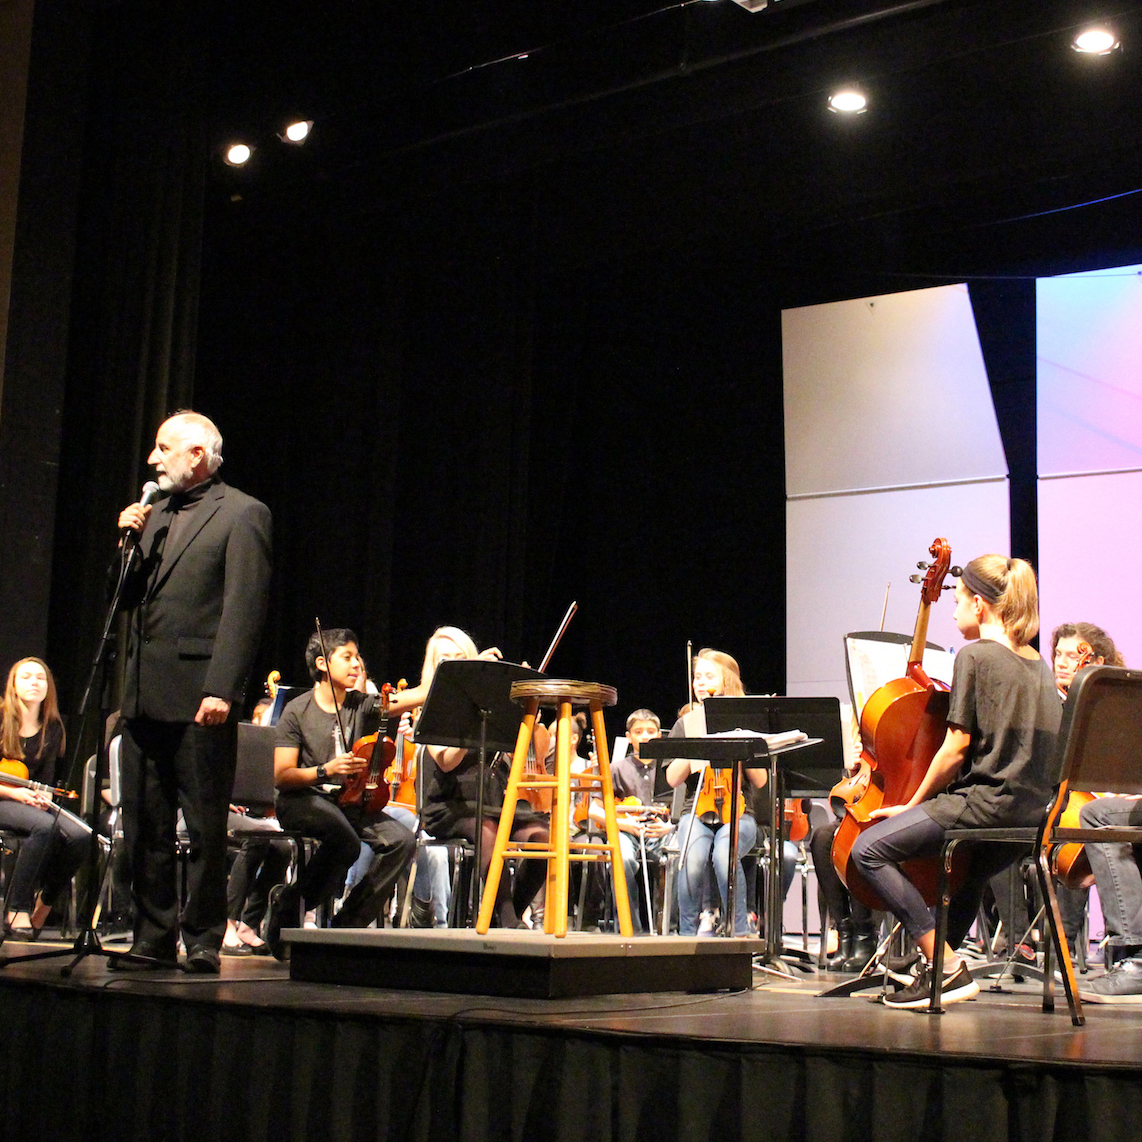 """Medfield is Side-by-side with Berklee World Strings  Hometown Weekly News    """"For the first time in its history, Berklee World Strings performed a side-by-side concert with Medfield Strings Orchestra on Wednesday evening. This was, in fact, the first time Berklee World Strings had performed side-by-side..."""""""